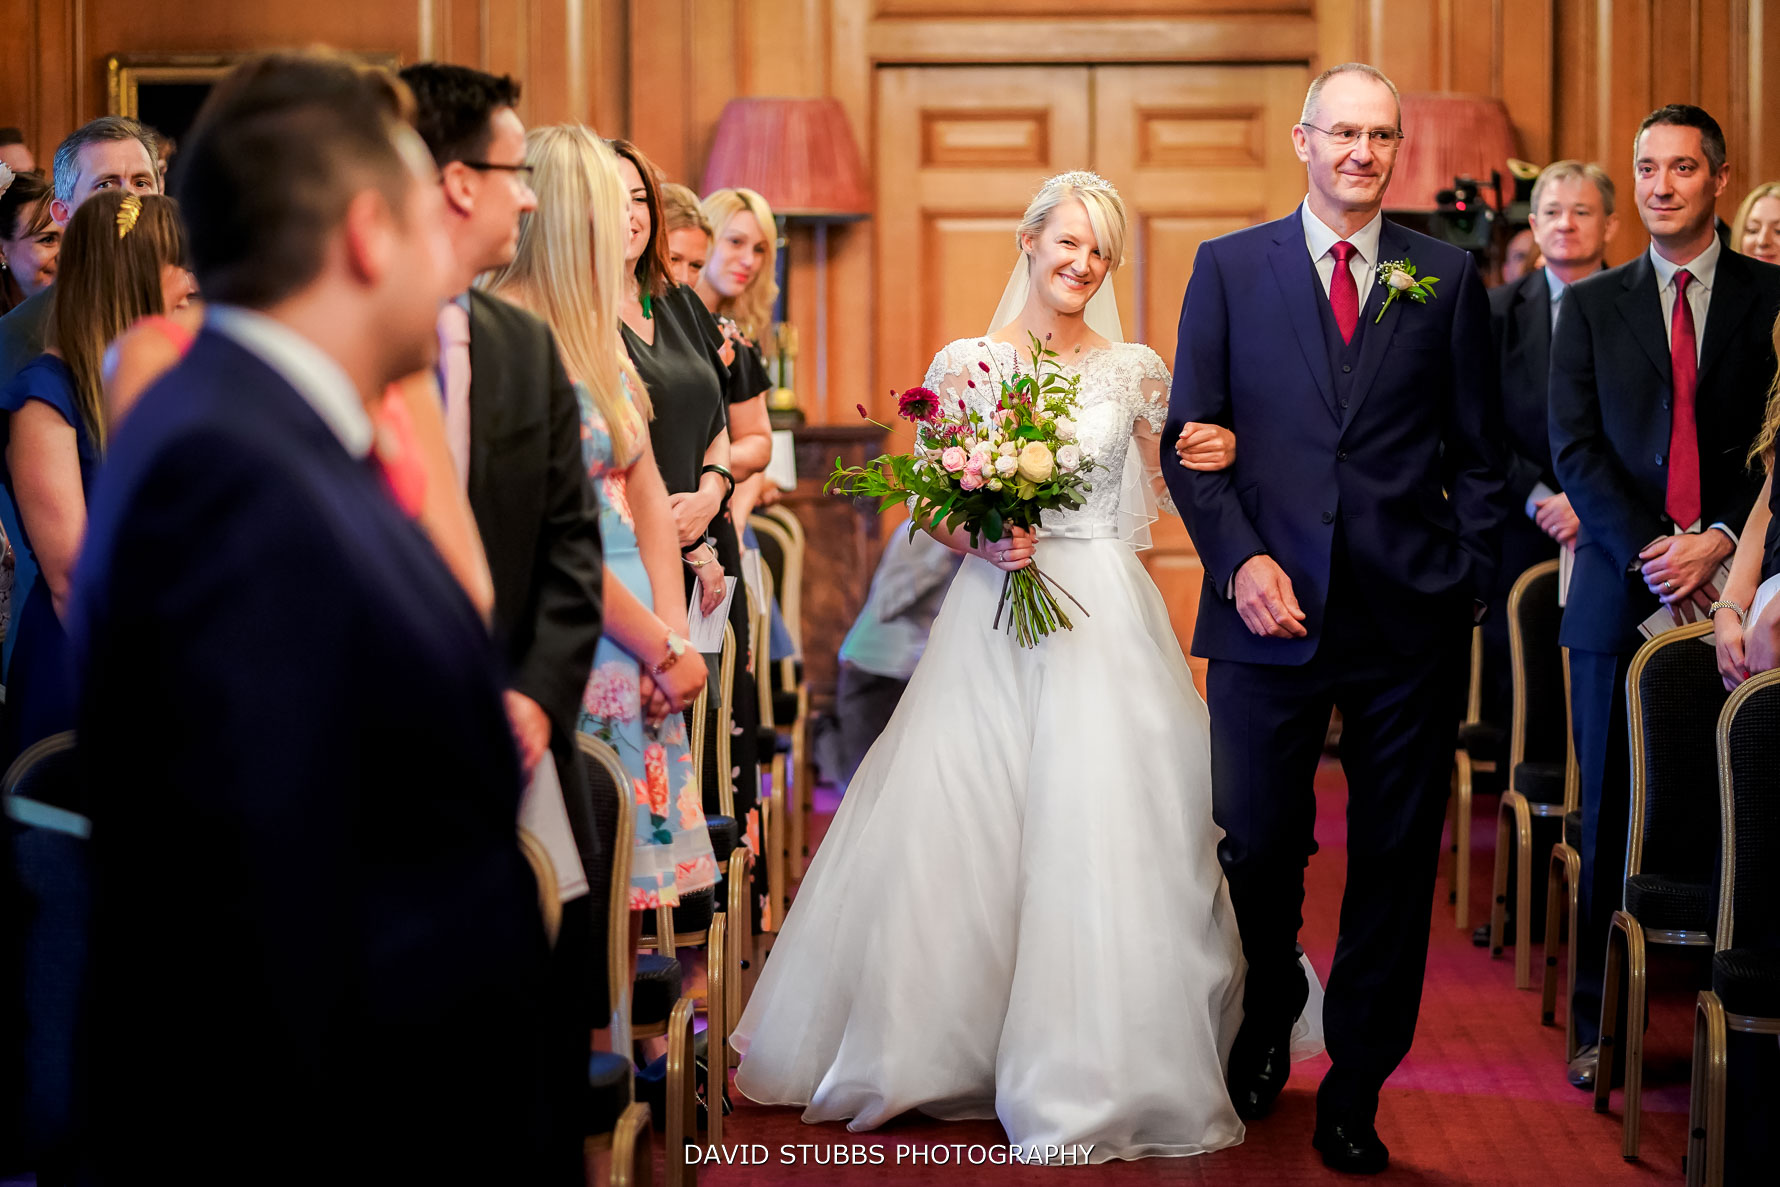 seeings bride for the first time in hall